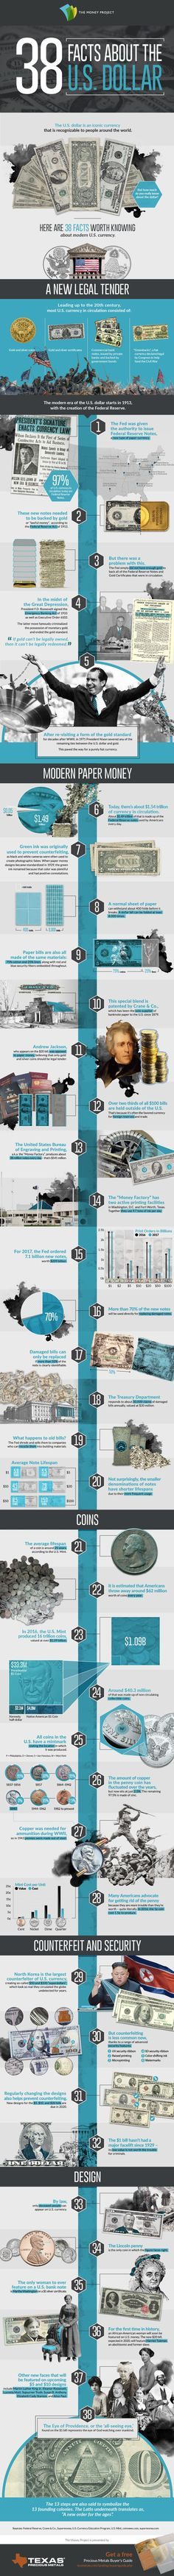 Interesting Facts about the US Dollar #USD #Currency #Infographic